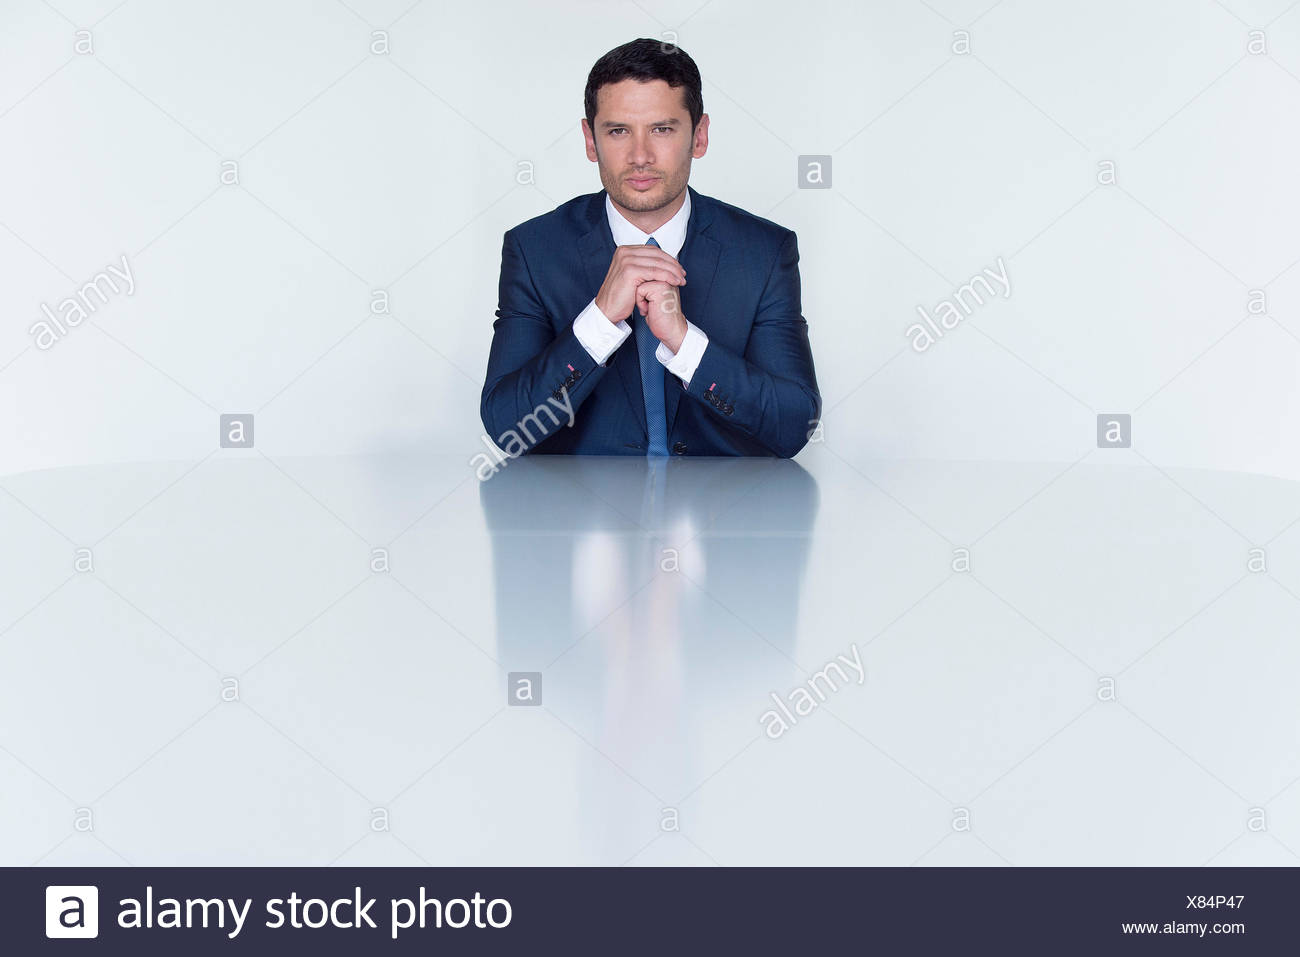 Confident businessman seated at table, portrait - Stock Image